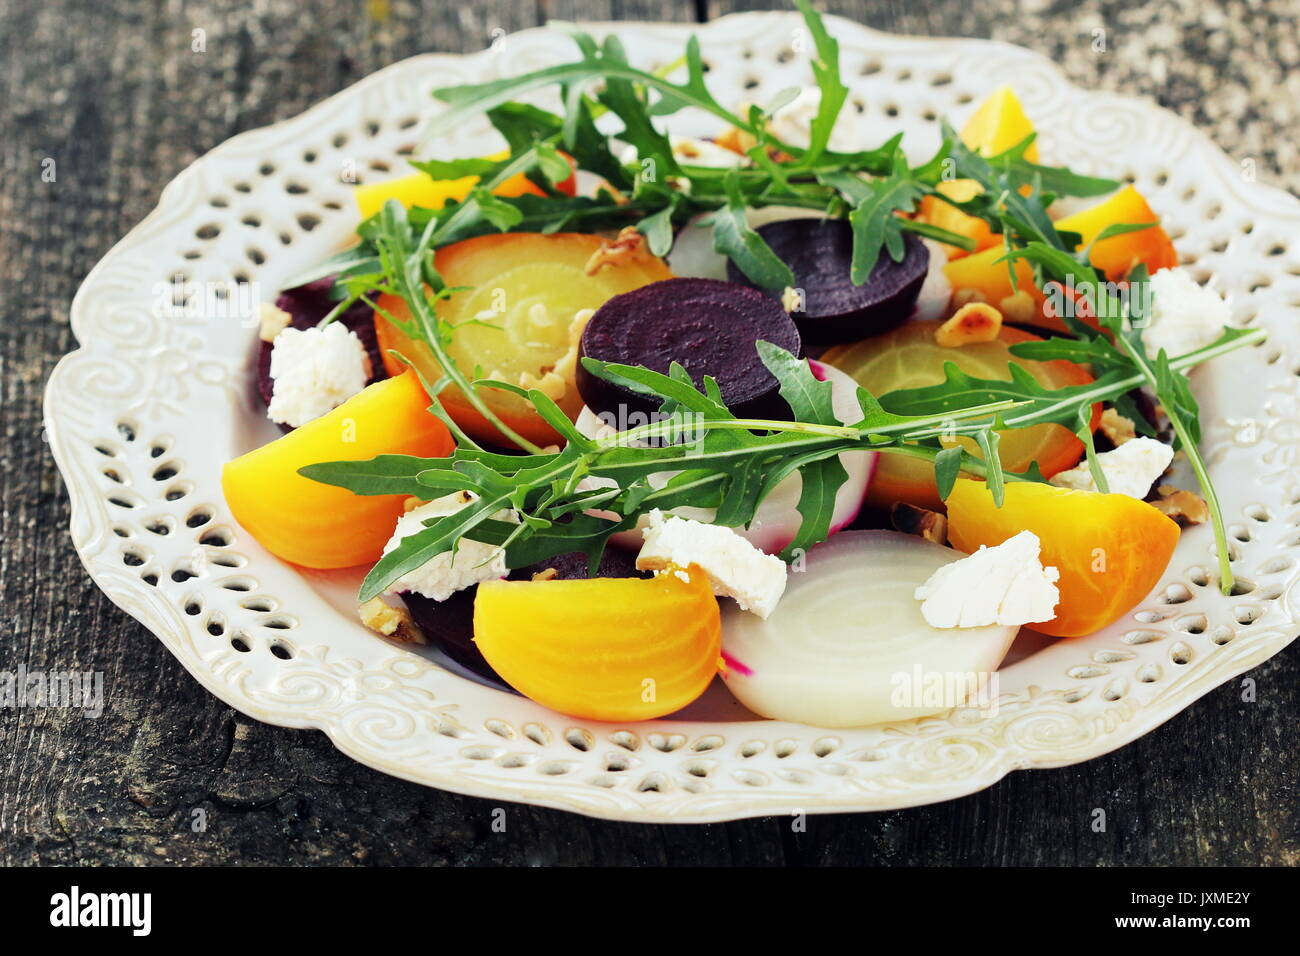 Healthy Beet Salad with red, white, golden beets, arugula, nuts, feta cheese on wooden background - Stock Image